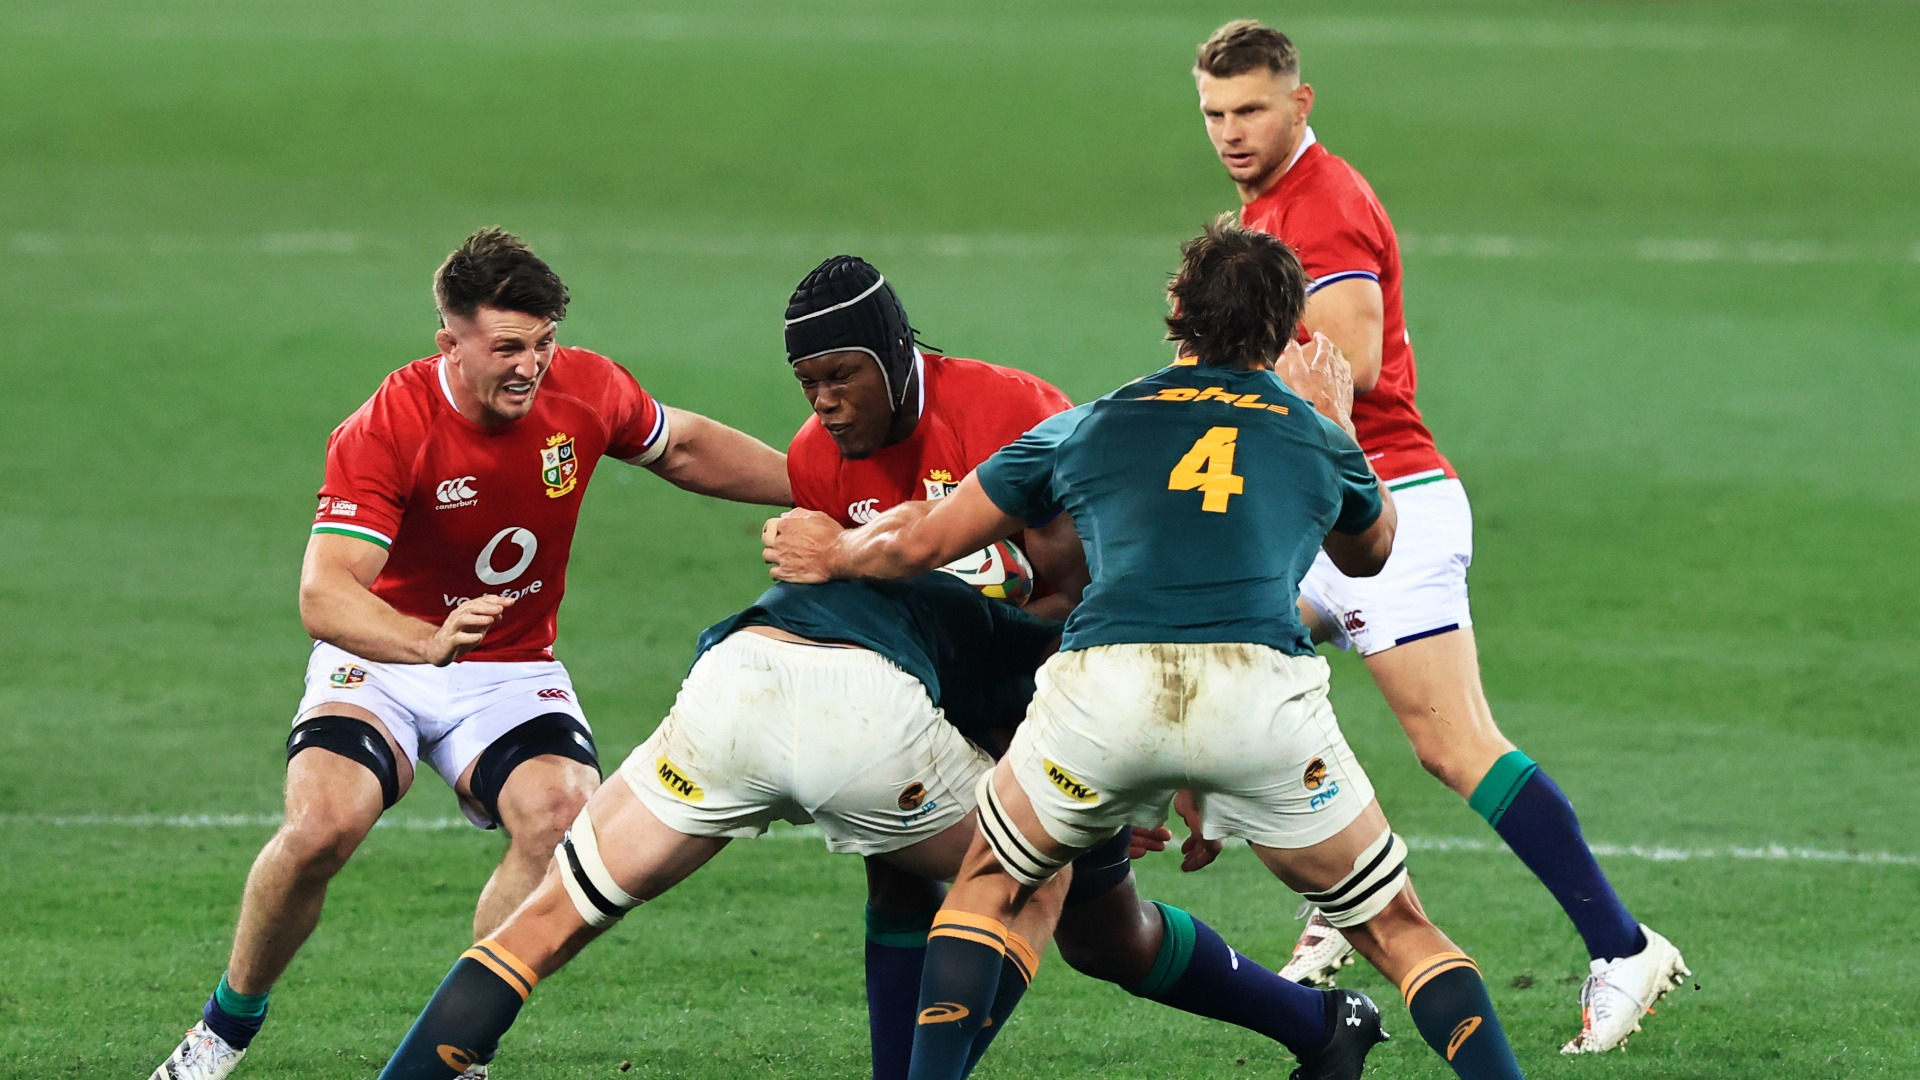 Maro Itoje was the British and Irish Lions' standout performer in the first Test win and Warren Gatland has heaped praise on the lock.